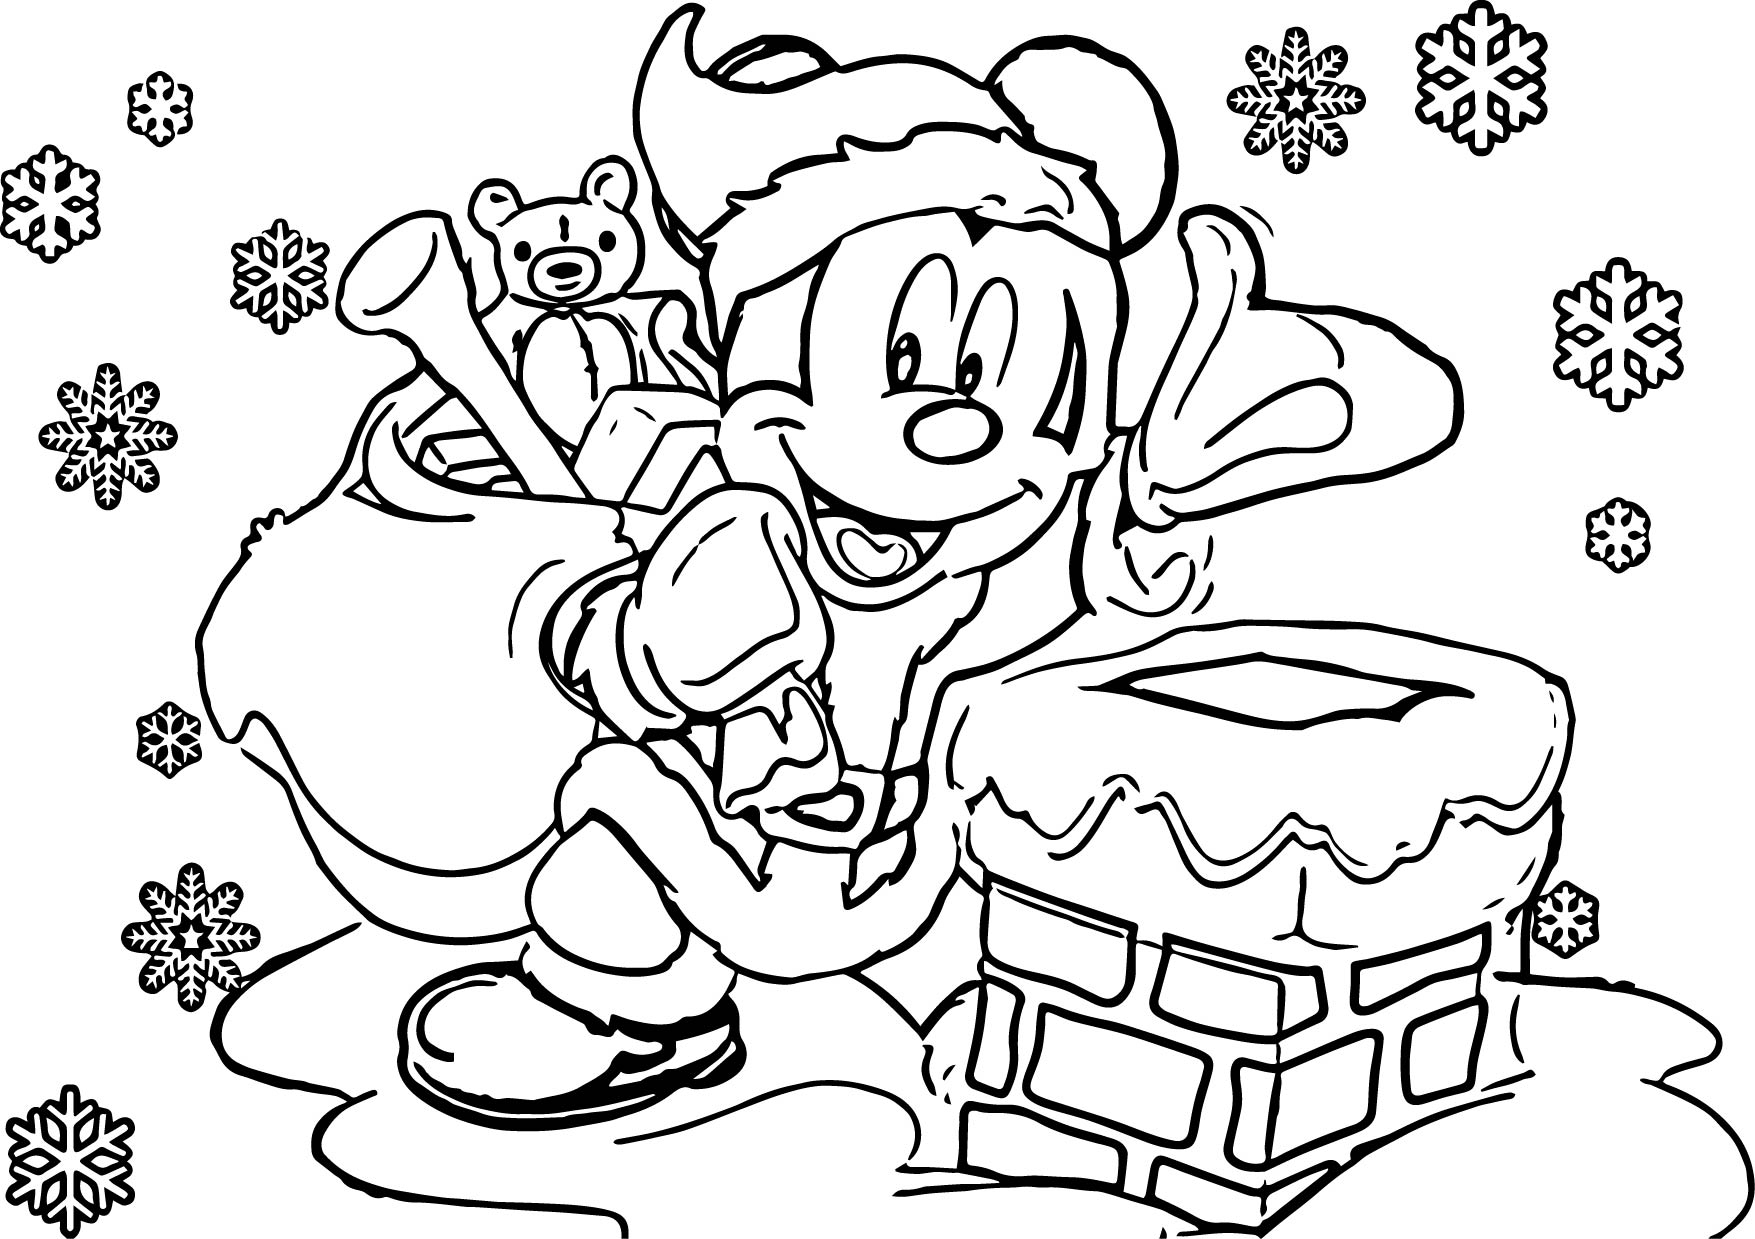 Christmas Coloring Pages Images With New Disney Princess Gallery Printable